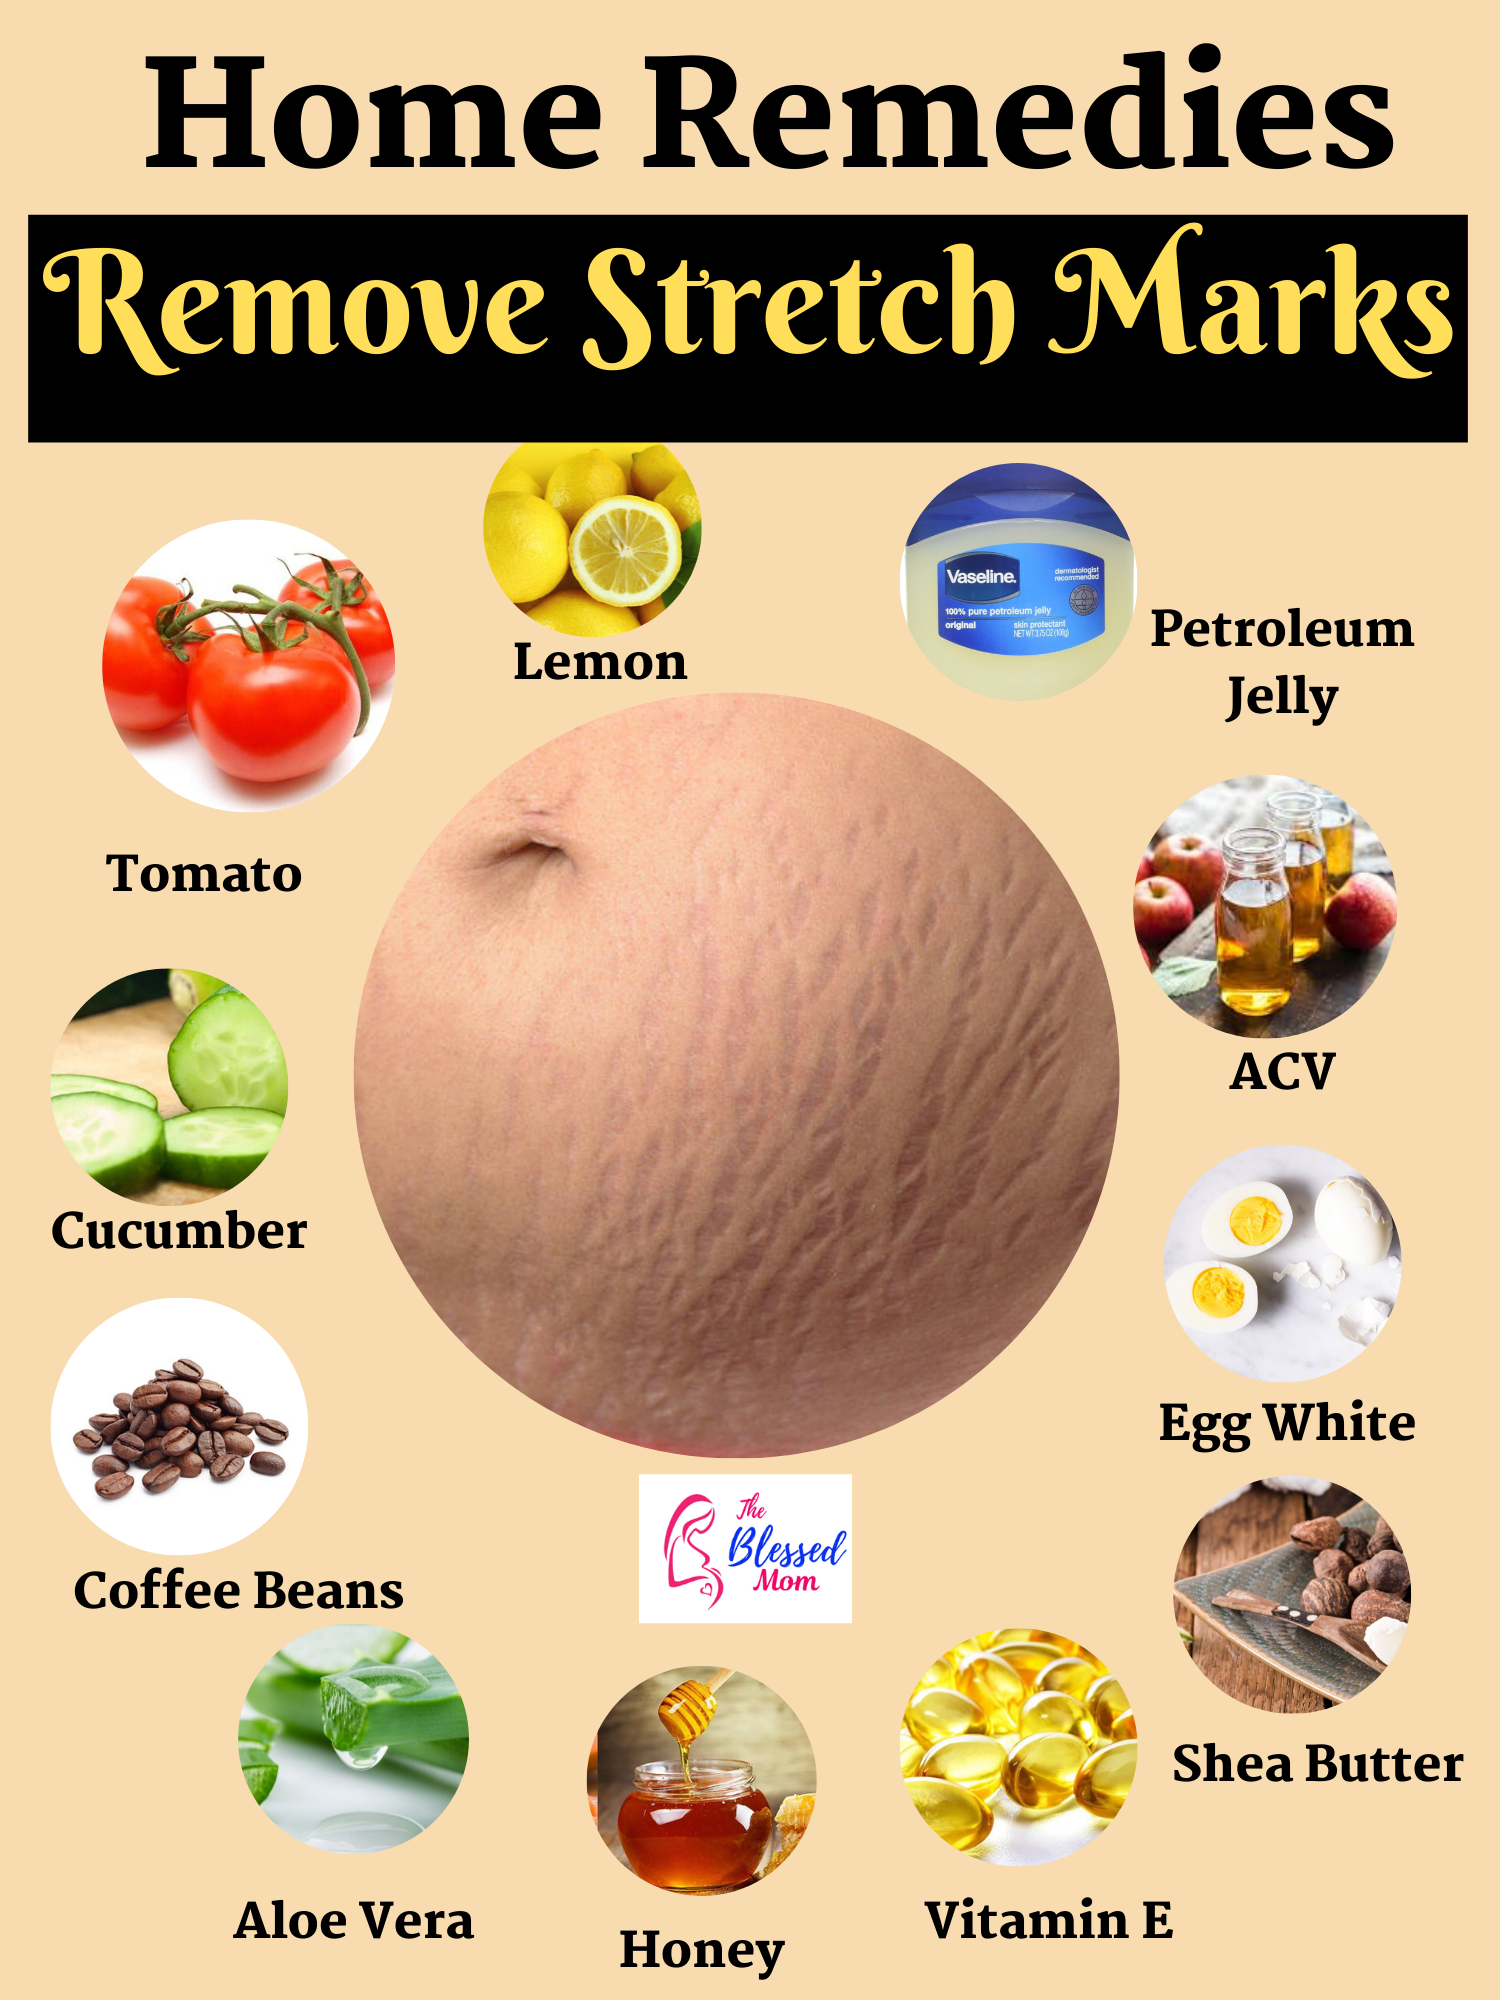 How To Get Rid Of Stretch Marks Naturally Causes Home Remedies Stretch Mark Remedies Beauty Tips Home Remedy Natural Stretch Mark Removal